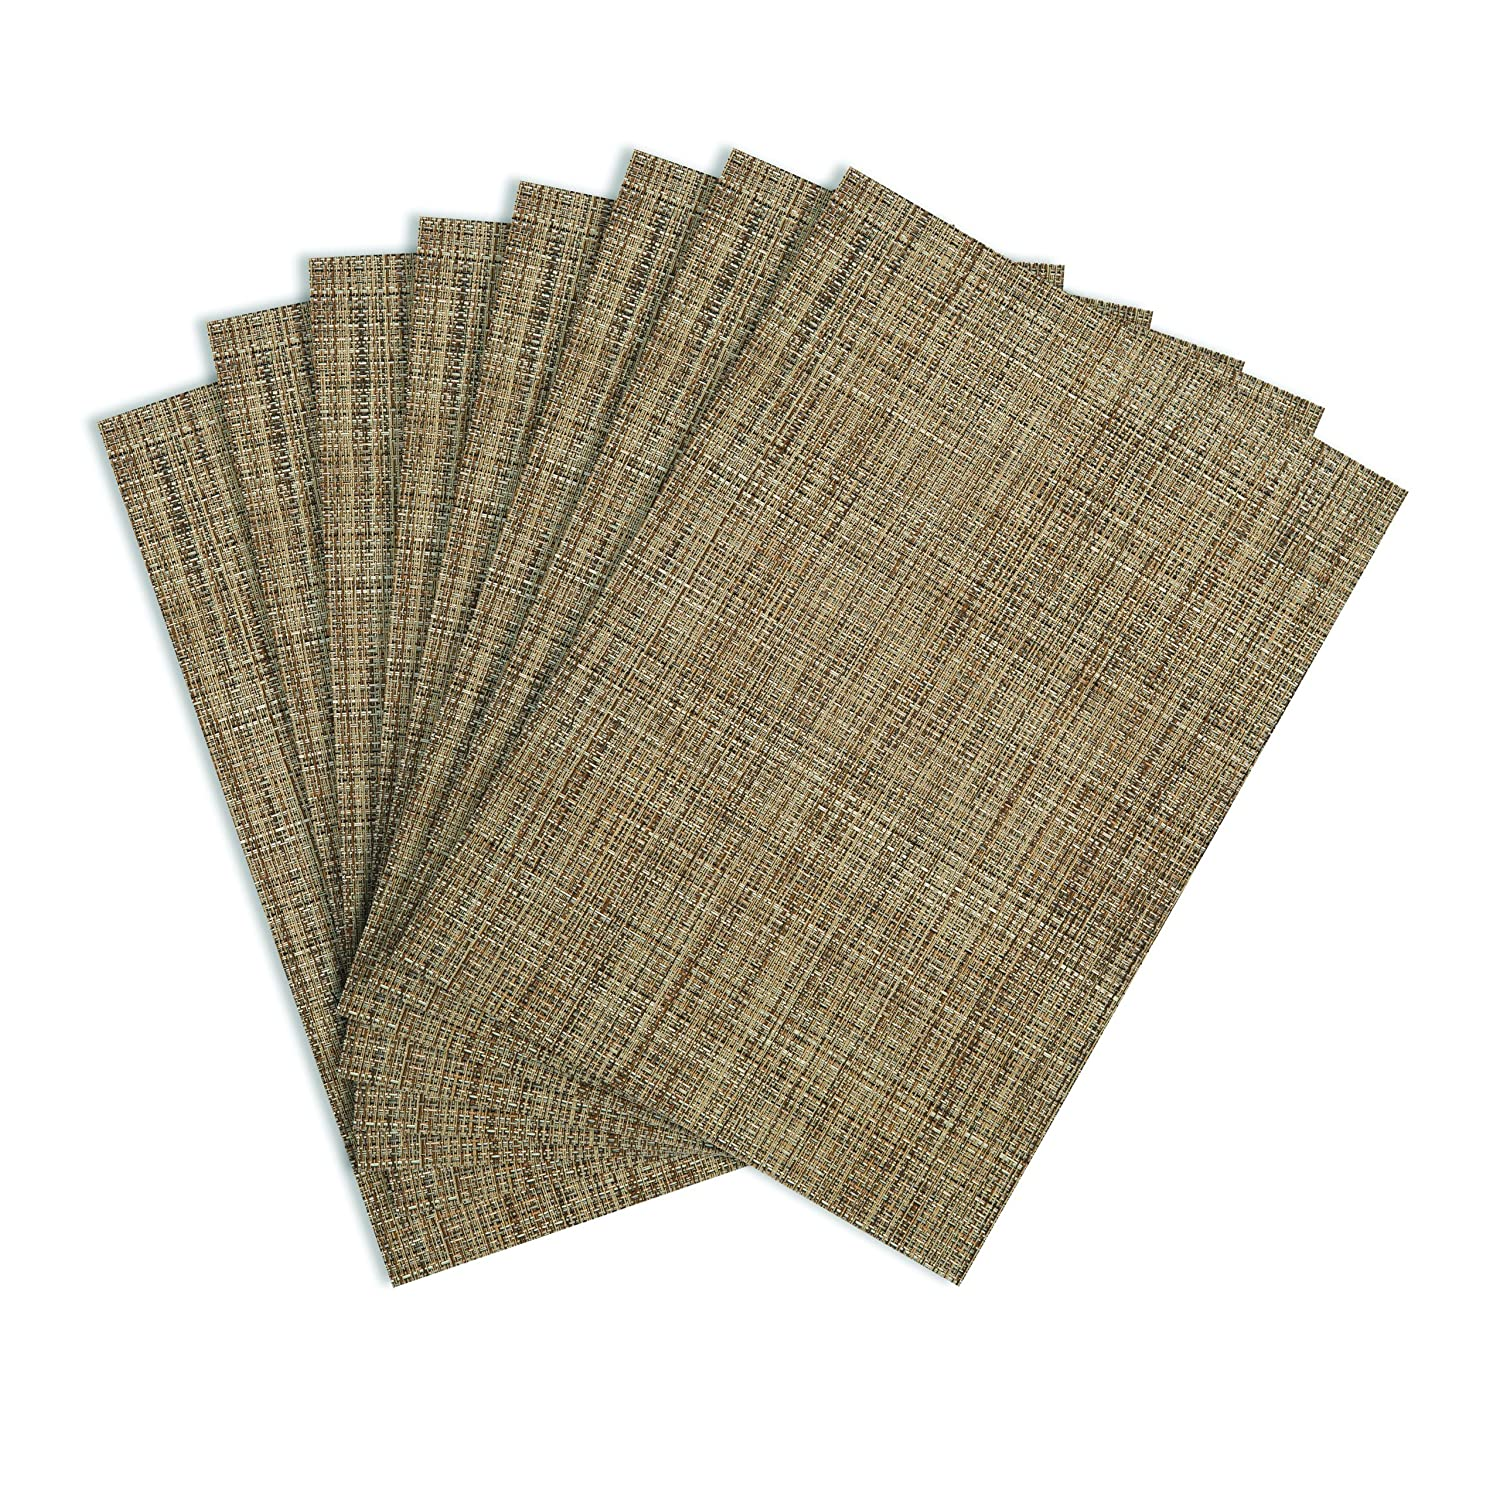 Dining Table Mats Designs - Benson mills tweed woven vinyl placemats natural set of 8